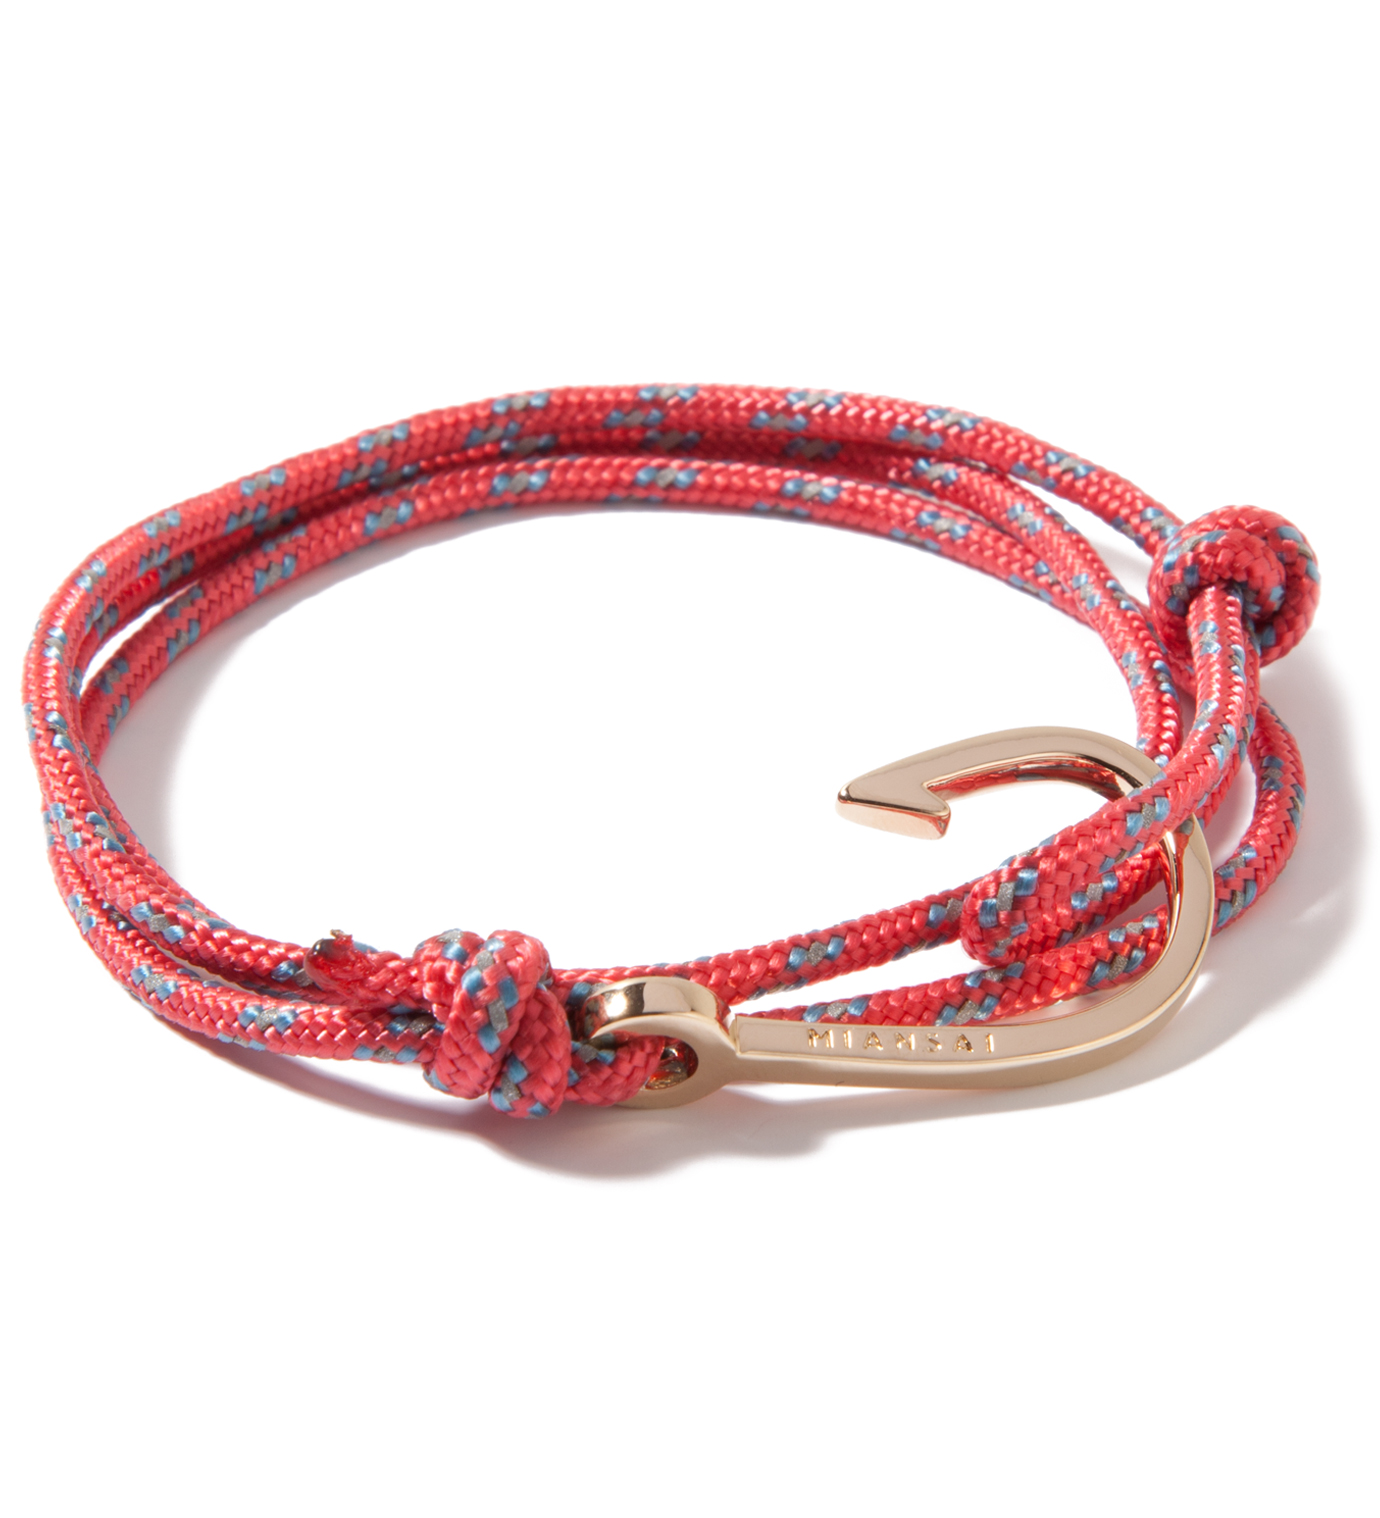 Miansai Gold Hook on Salmon Rope Bracelet